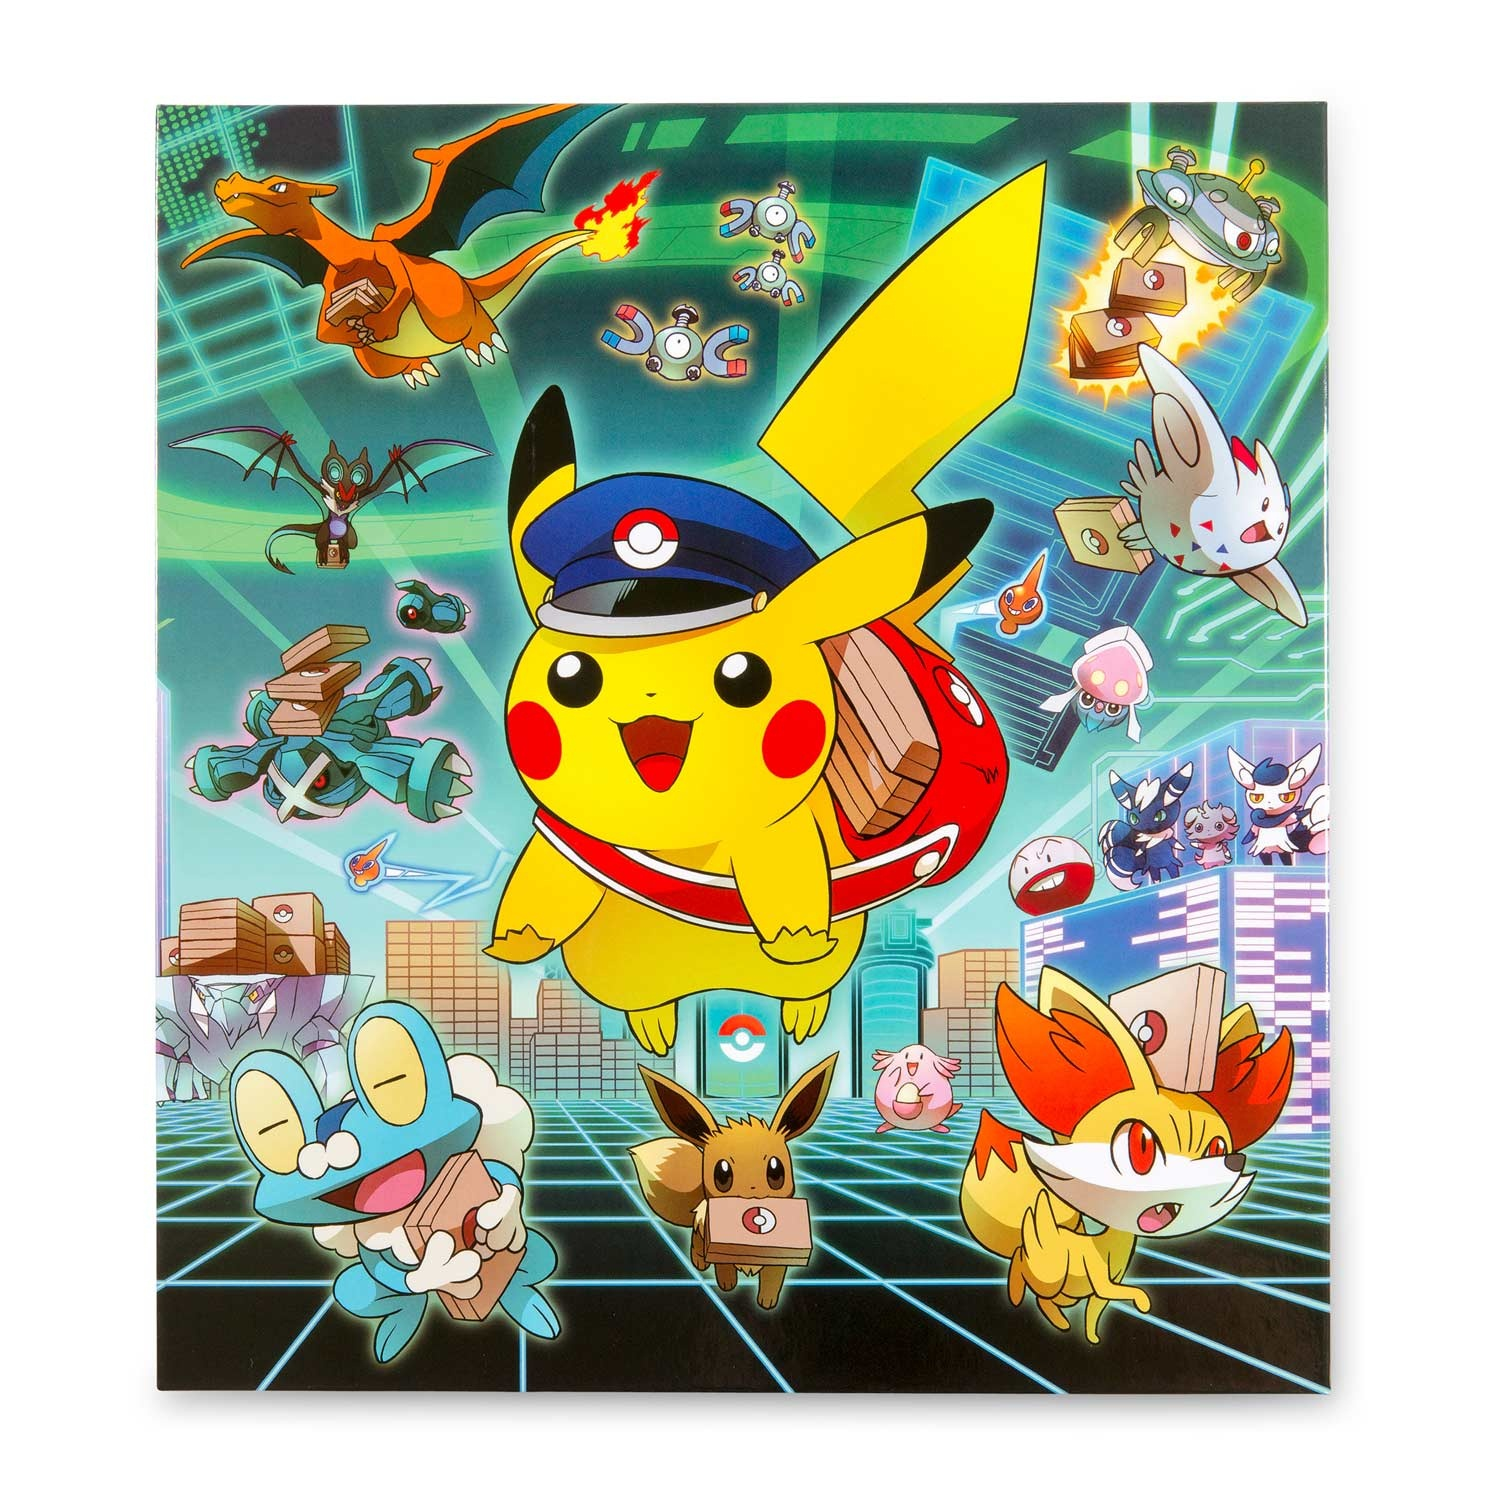 Pokemon Binder Cover Printable (79+ Images In Collection) Page 1 - Pokemon Binder Cover Printable Free